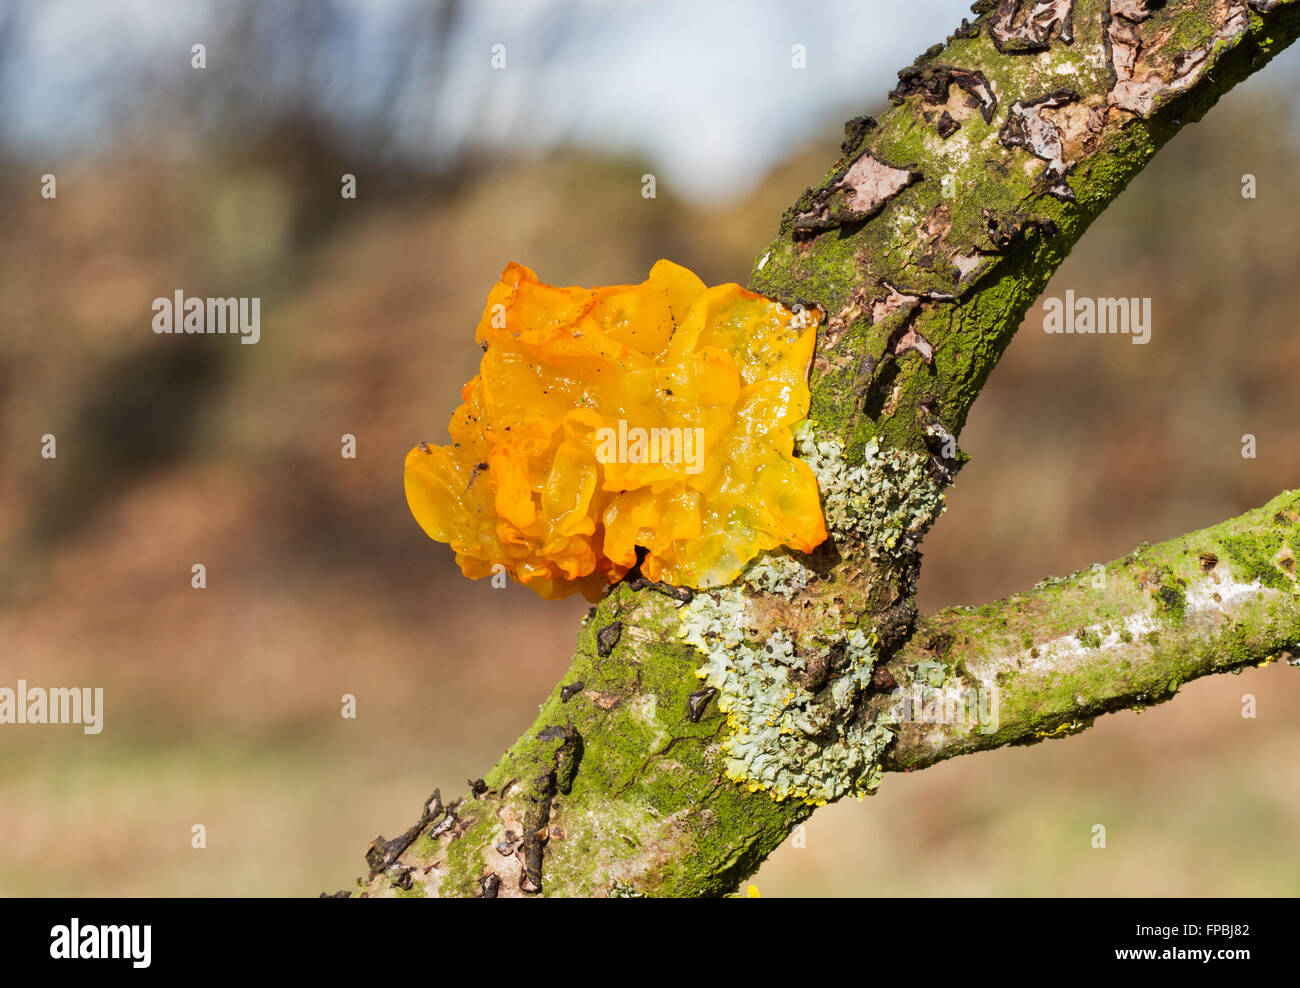 Golden jelly fungus (Tremella mesenterica) on the dead branch of an Oak tree - Stock Image